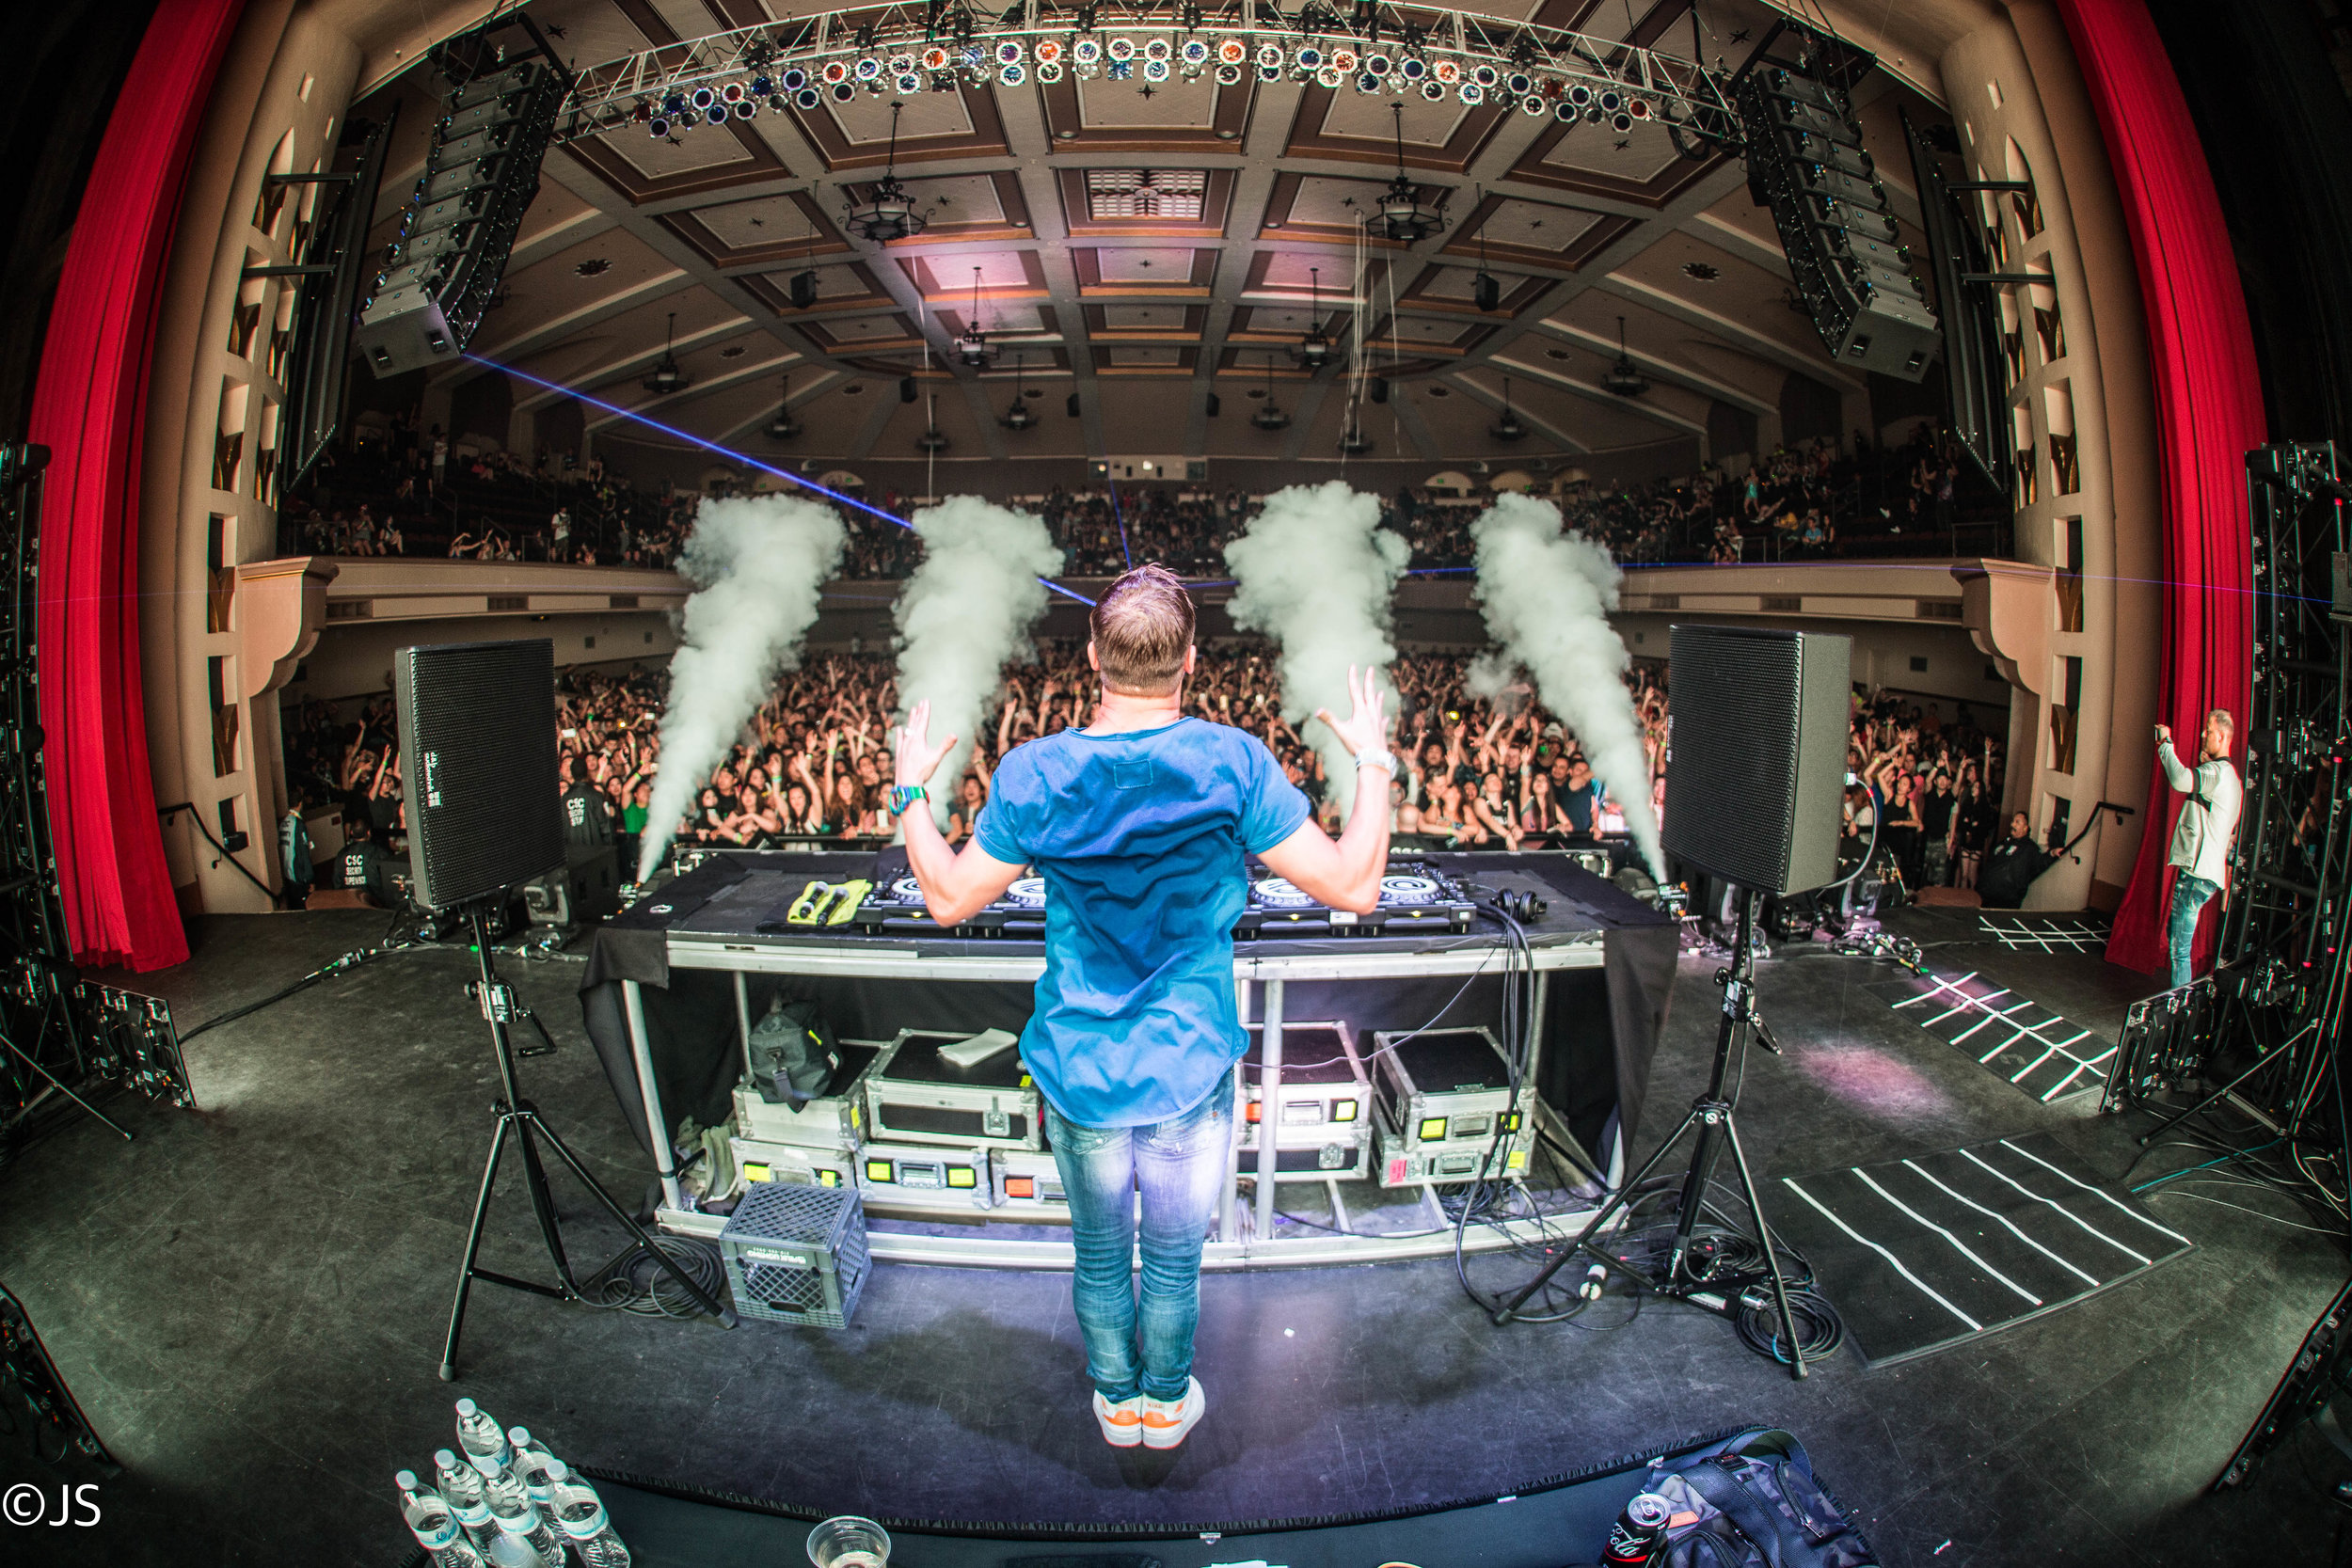 Dash Berlin @ City National Civic: March 2017